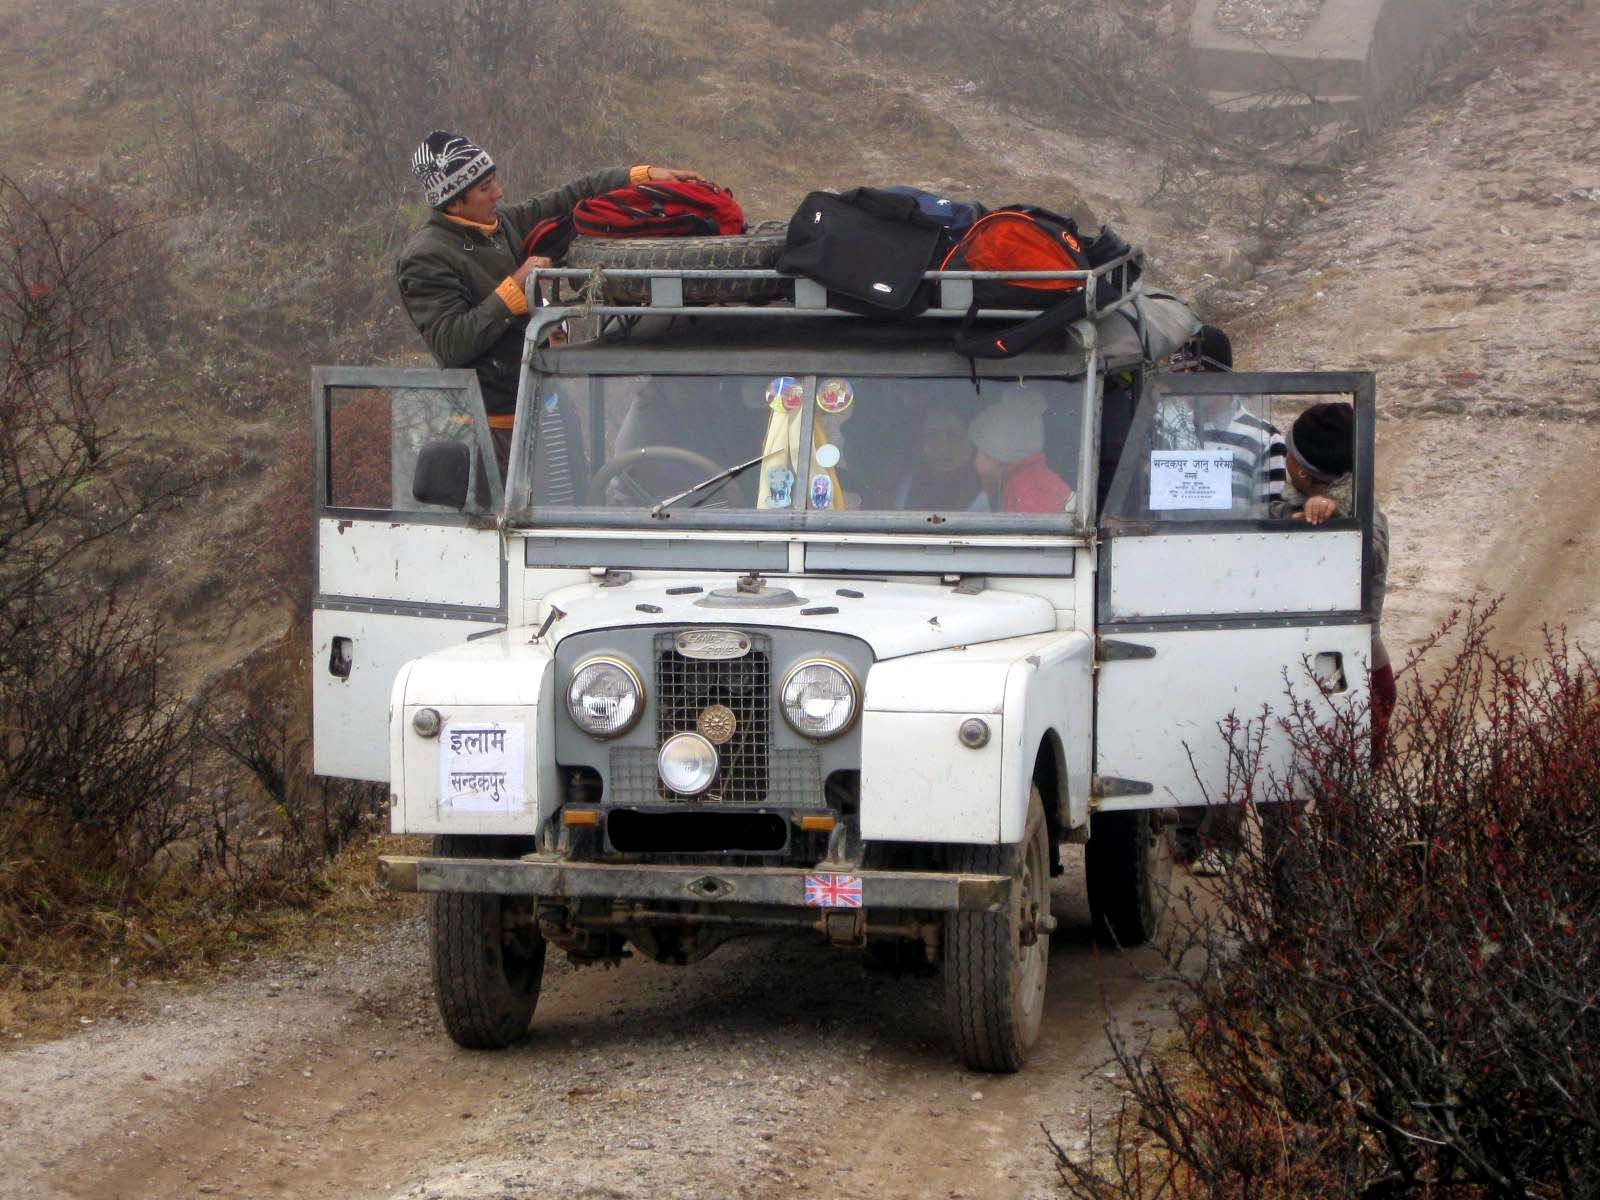 Land Rover in sandakphu